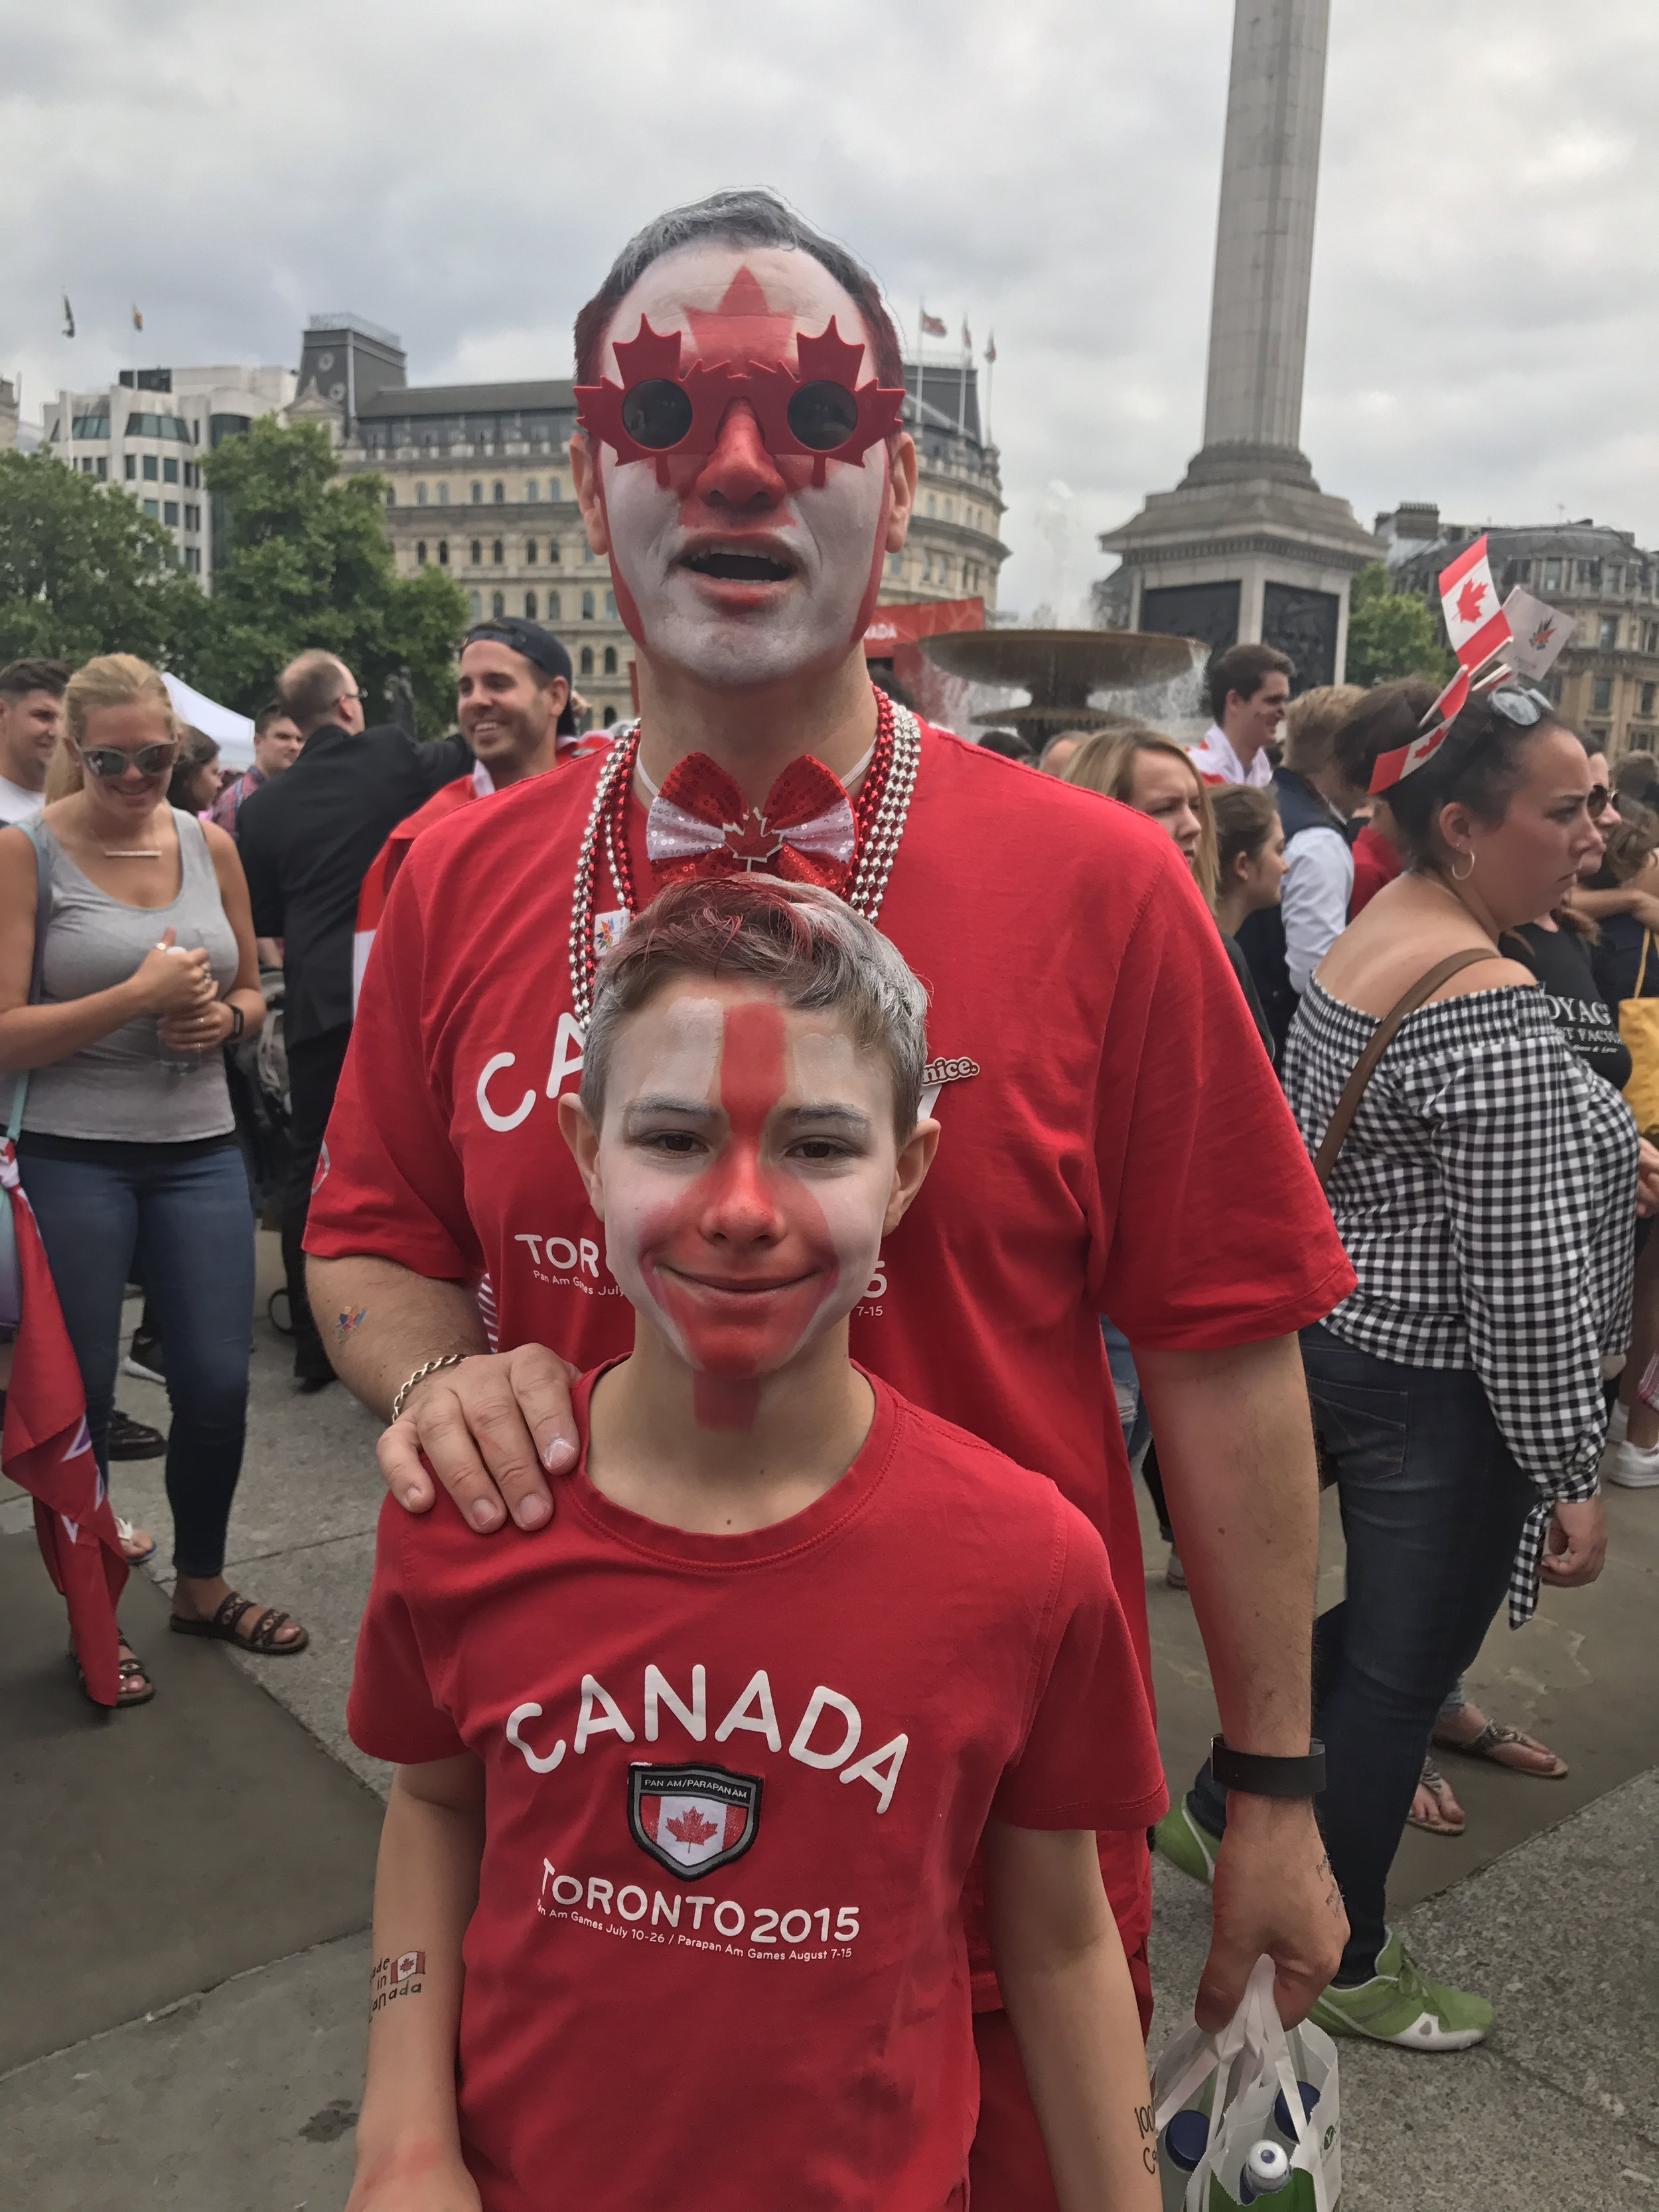 Father and Son at Trafalgar Square on Canada Day